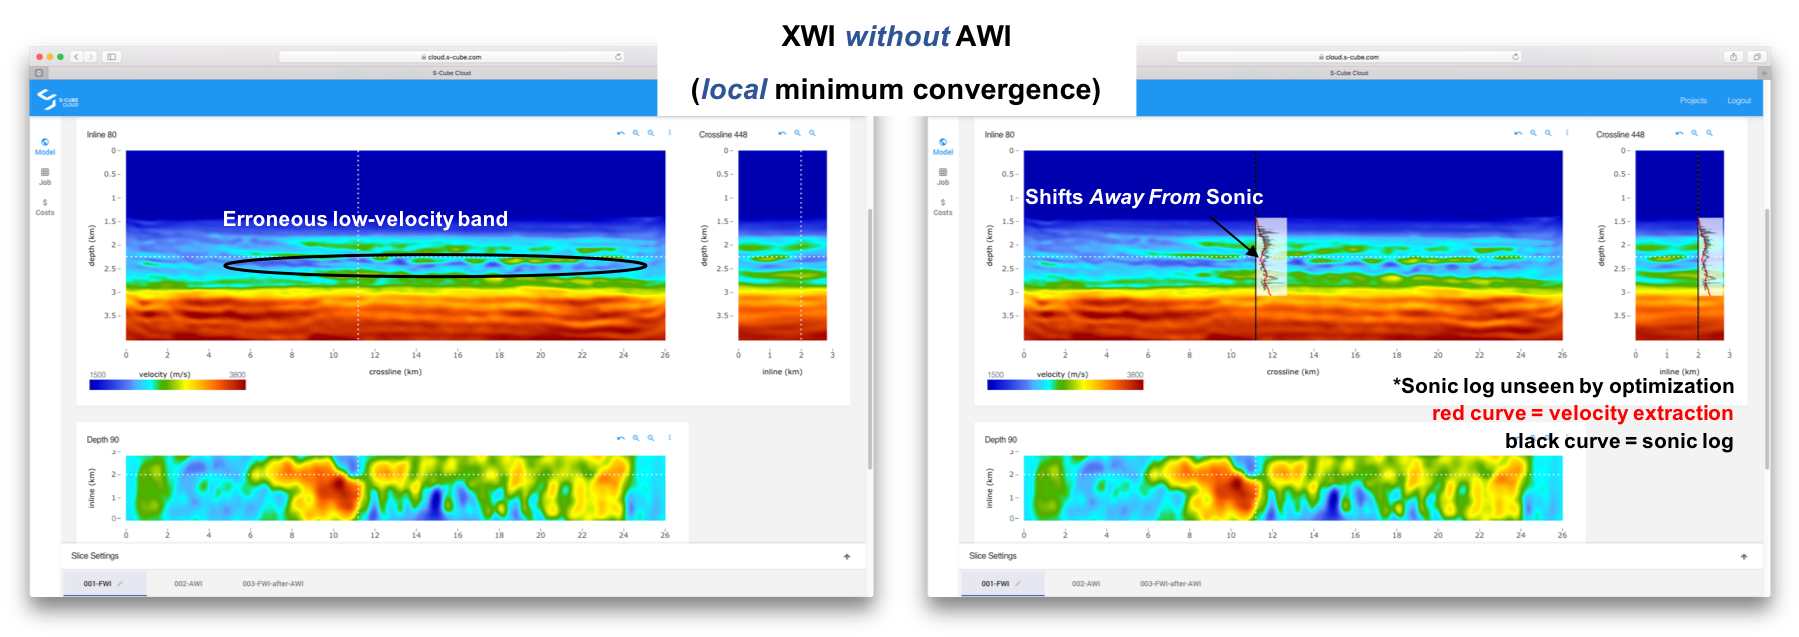 Same example showing spurious local minimum convergence going wayward at a depth of 2.2km applying waveform inversion without an adaptive cost function.